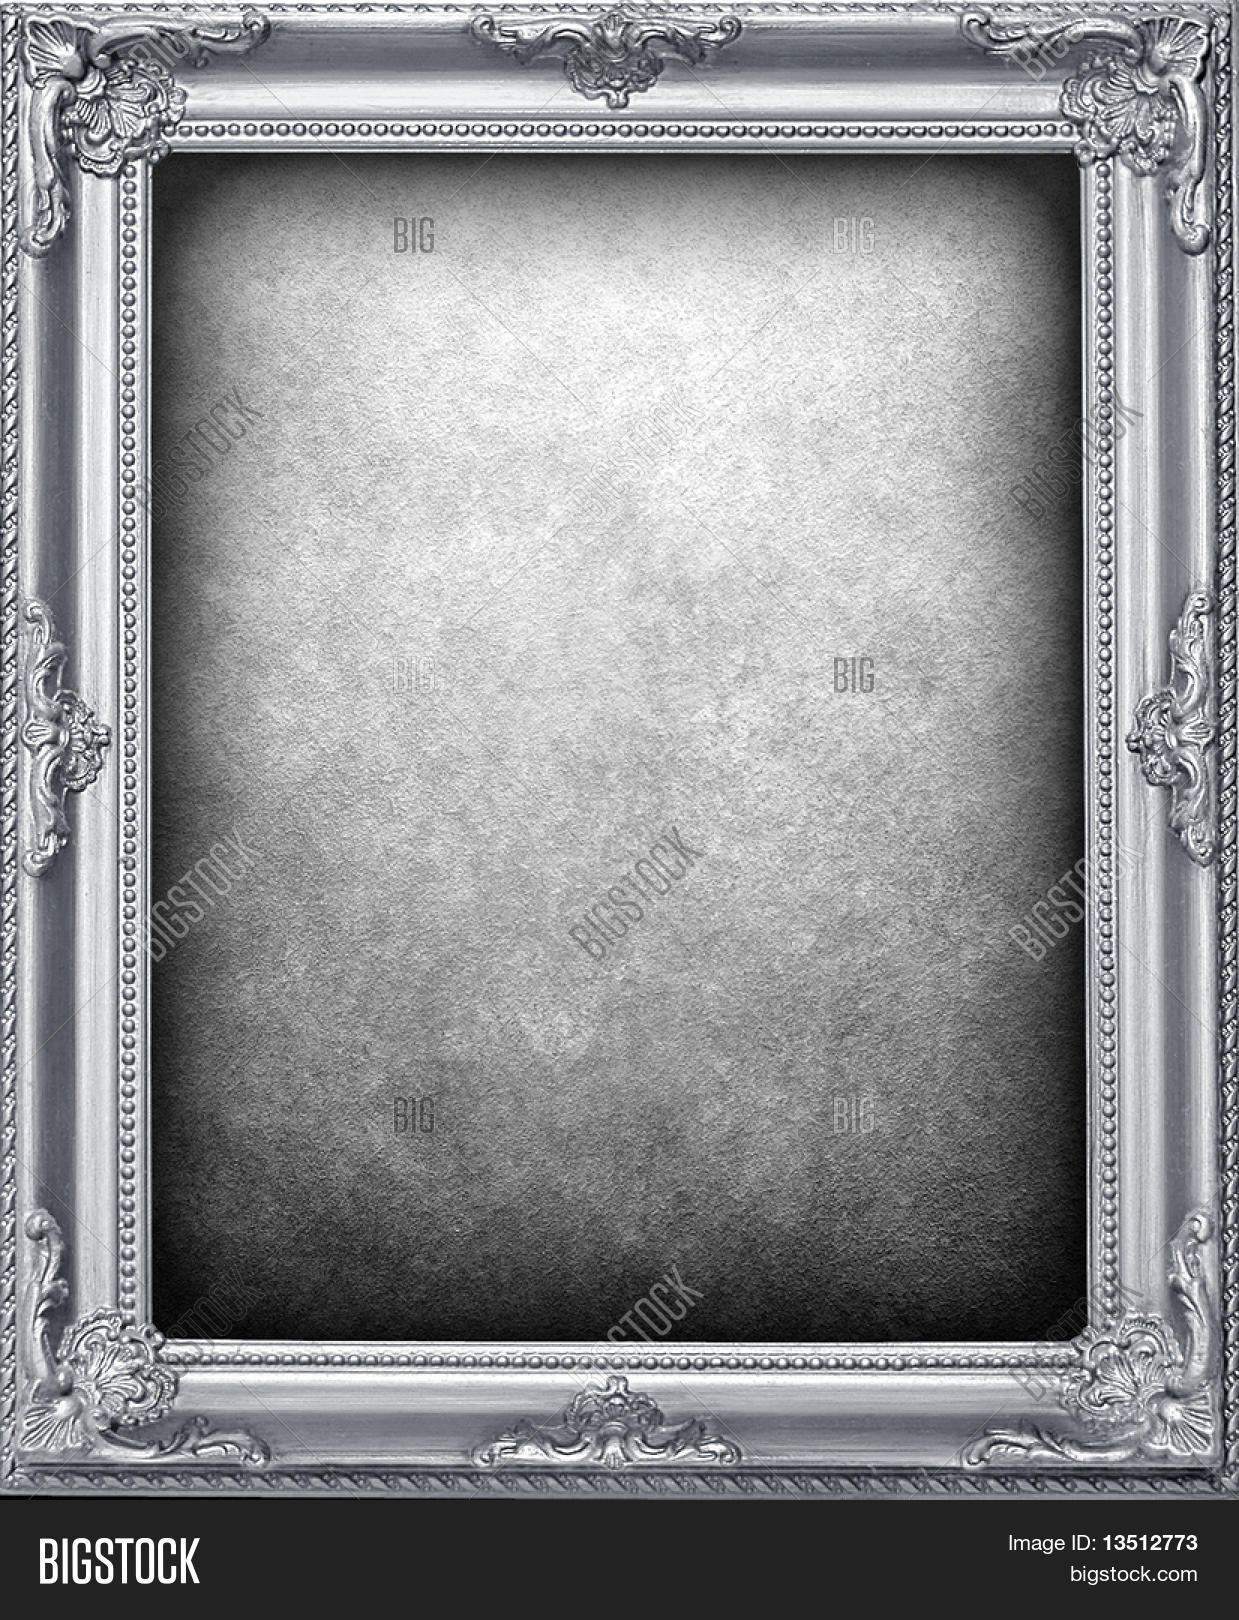 Silver Frame Image & Photo (Free Trial) | Bigstock